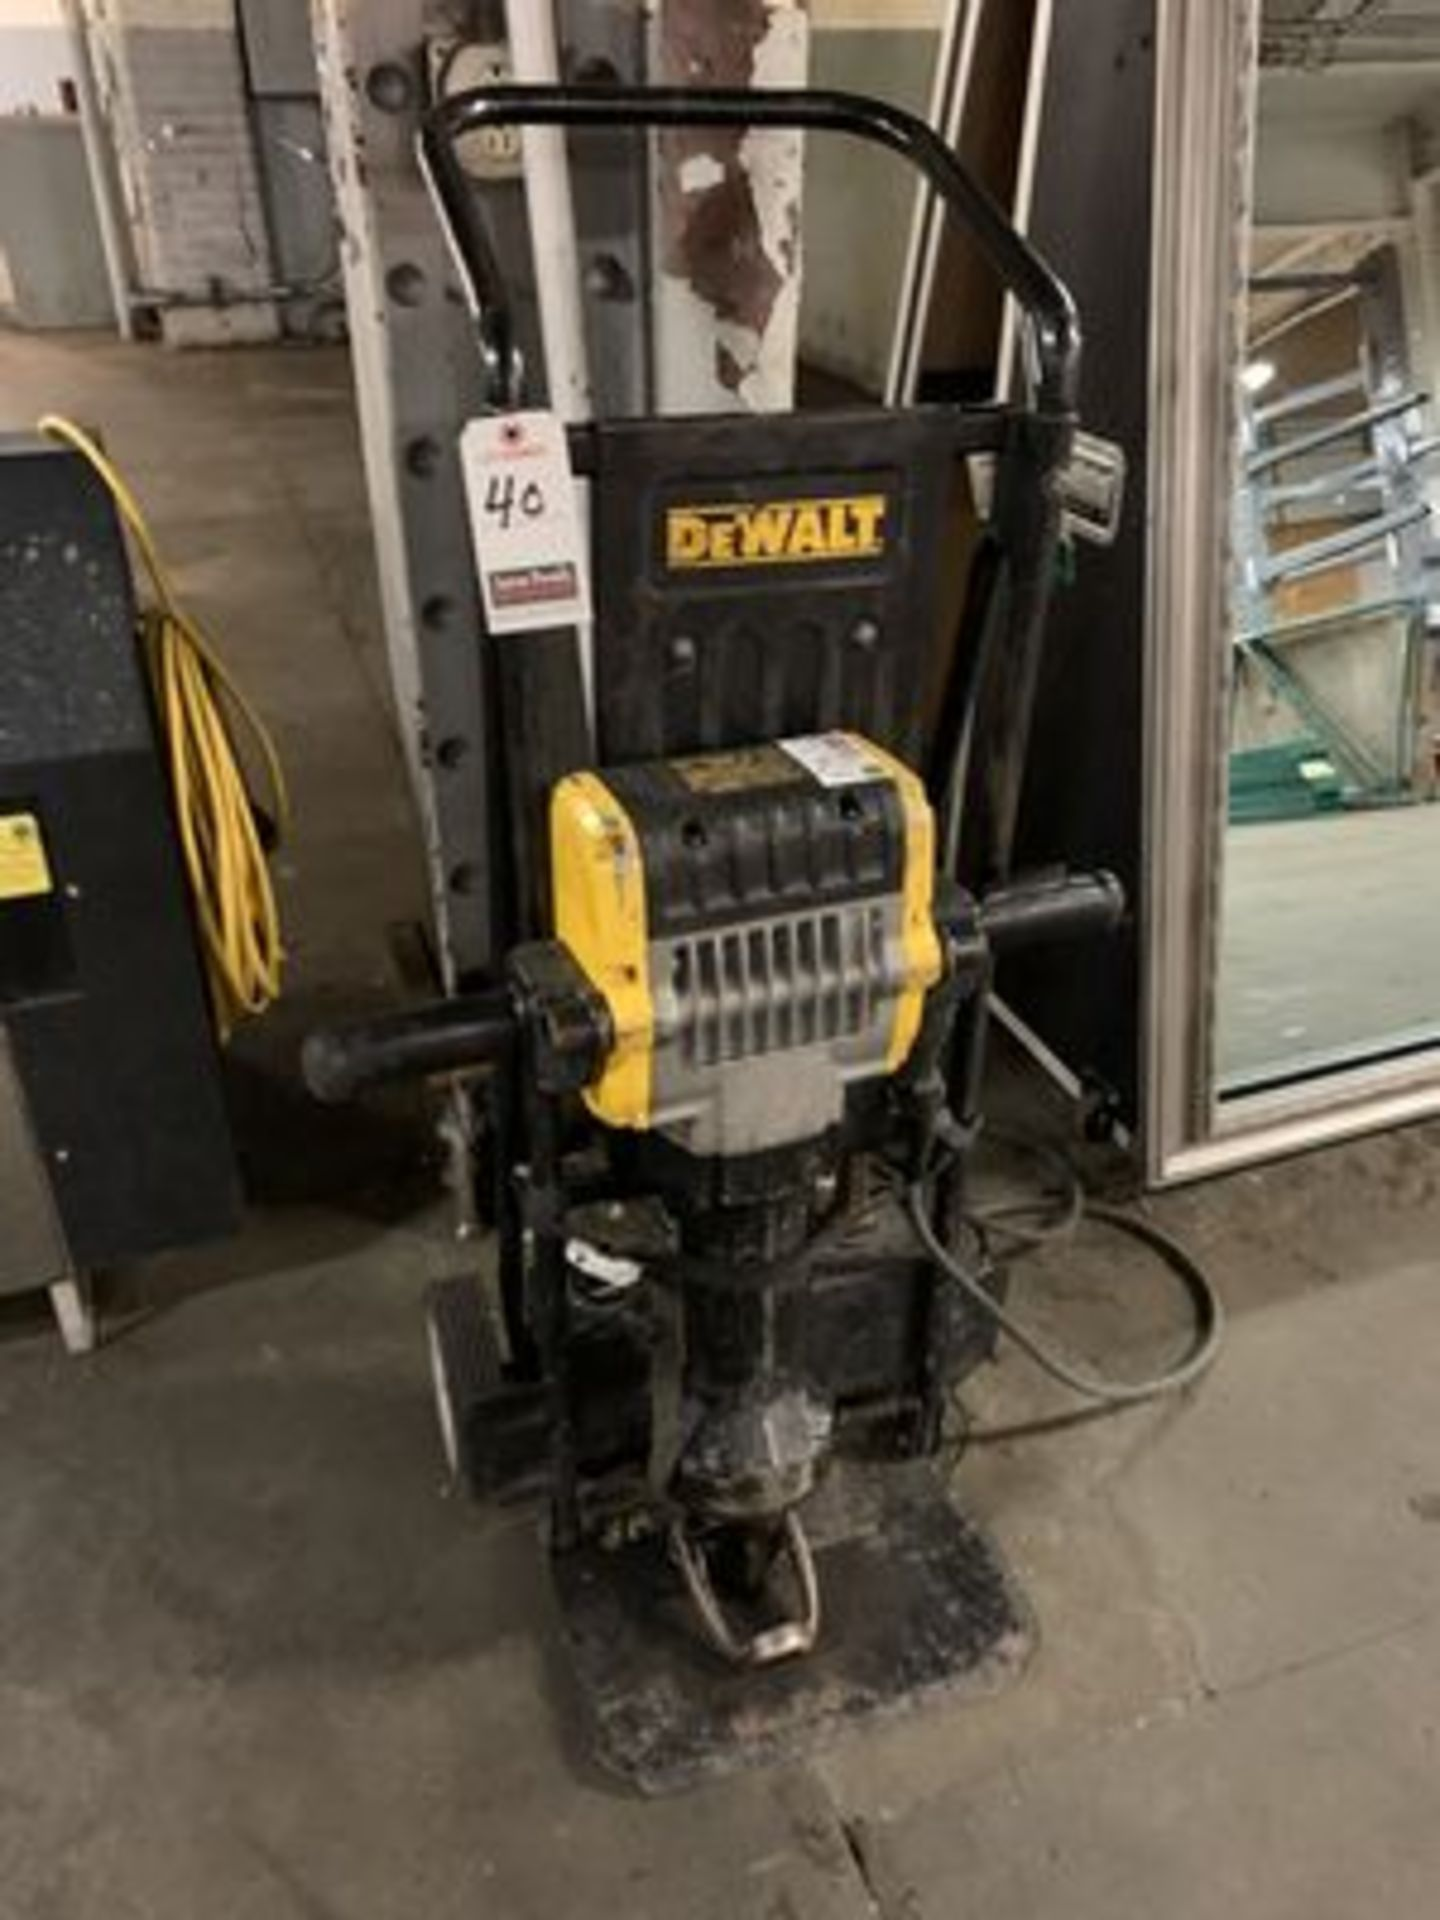 DEWALT PORT. D25980 ELEC. PAVEMENT BREAKER, 120V, 1 PH.